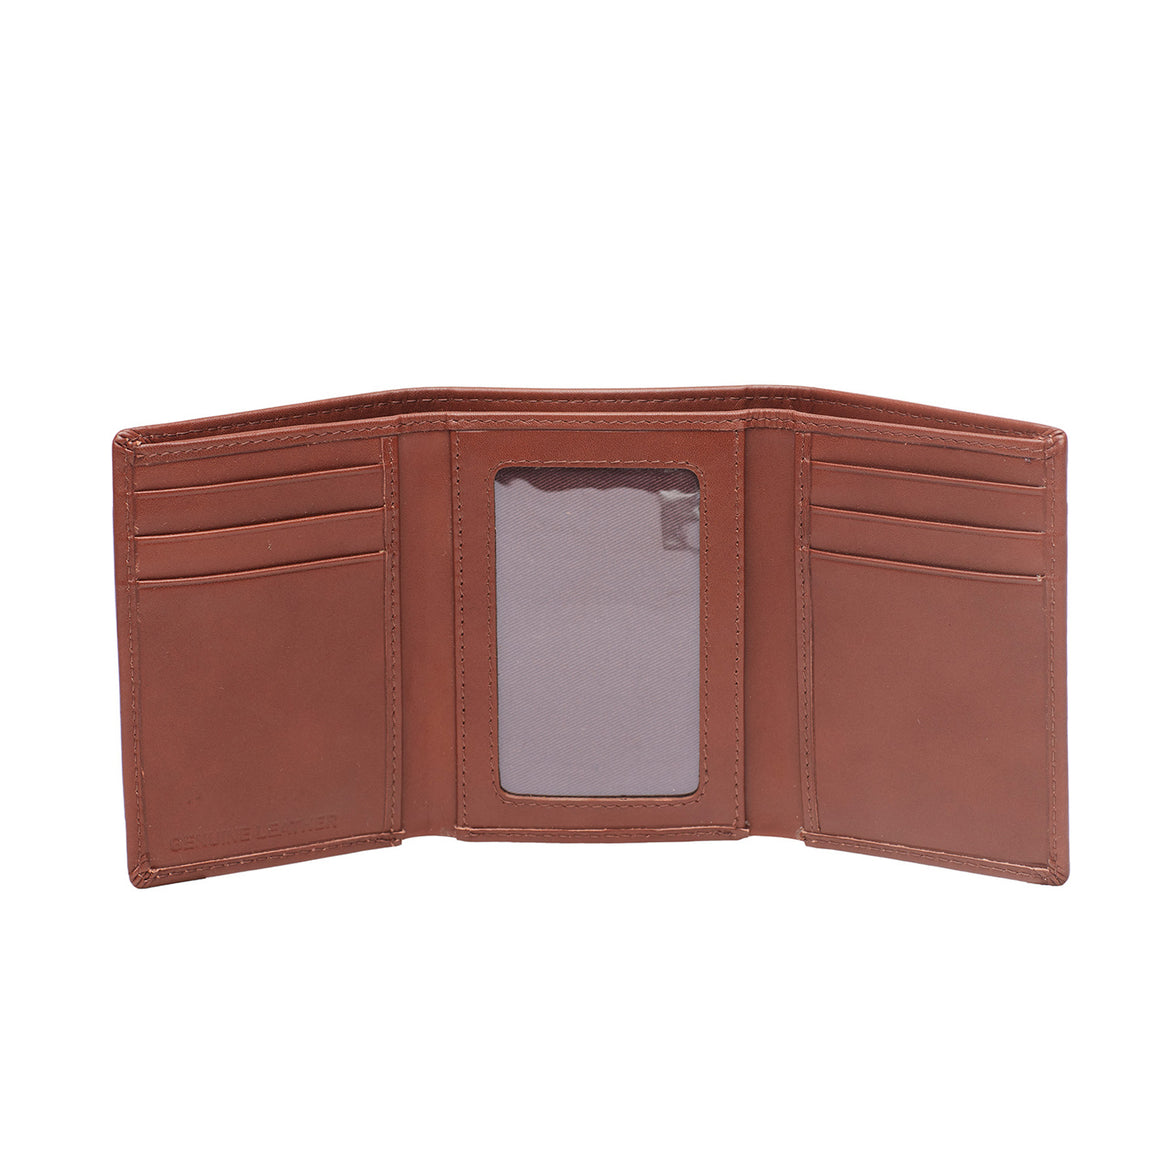 WT 0033 - TOHL SETTALA MEN'S WALLET - VINTAGE TAN